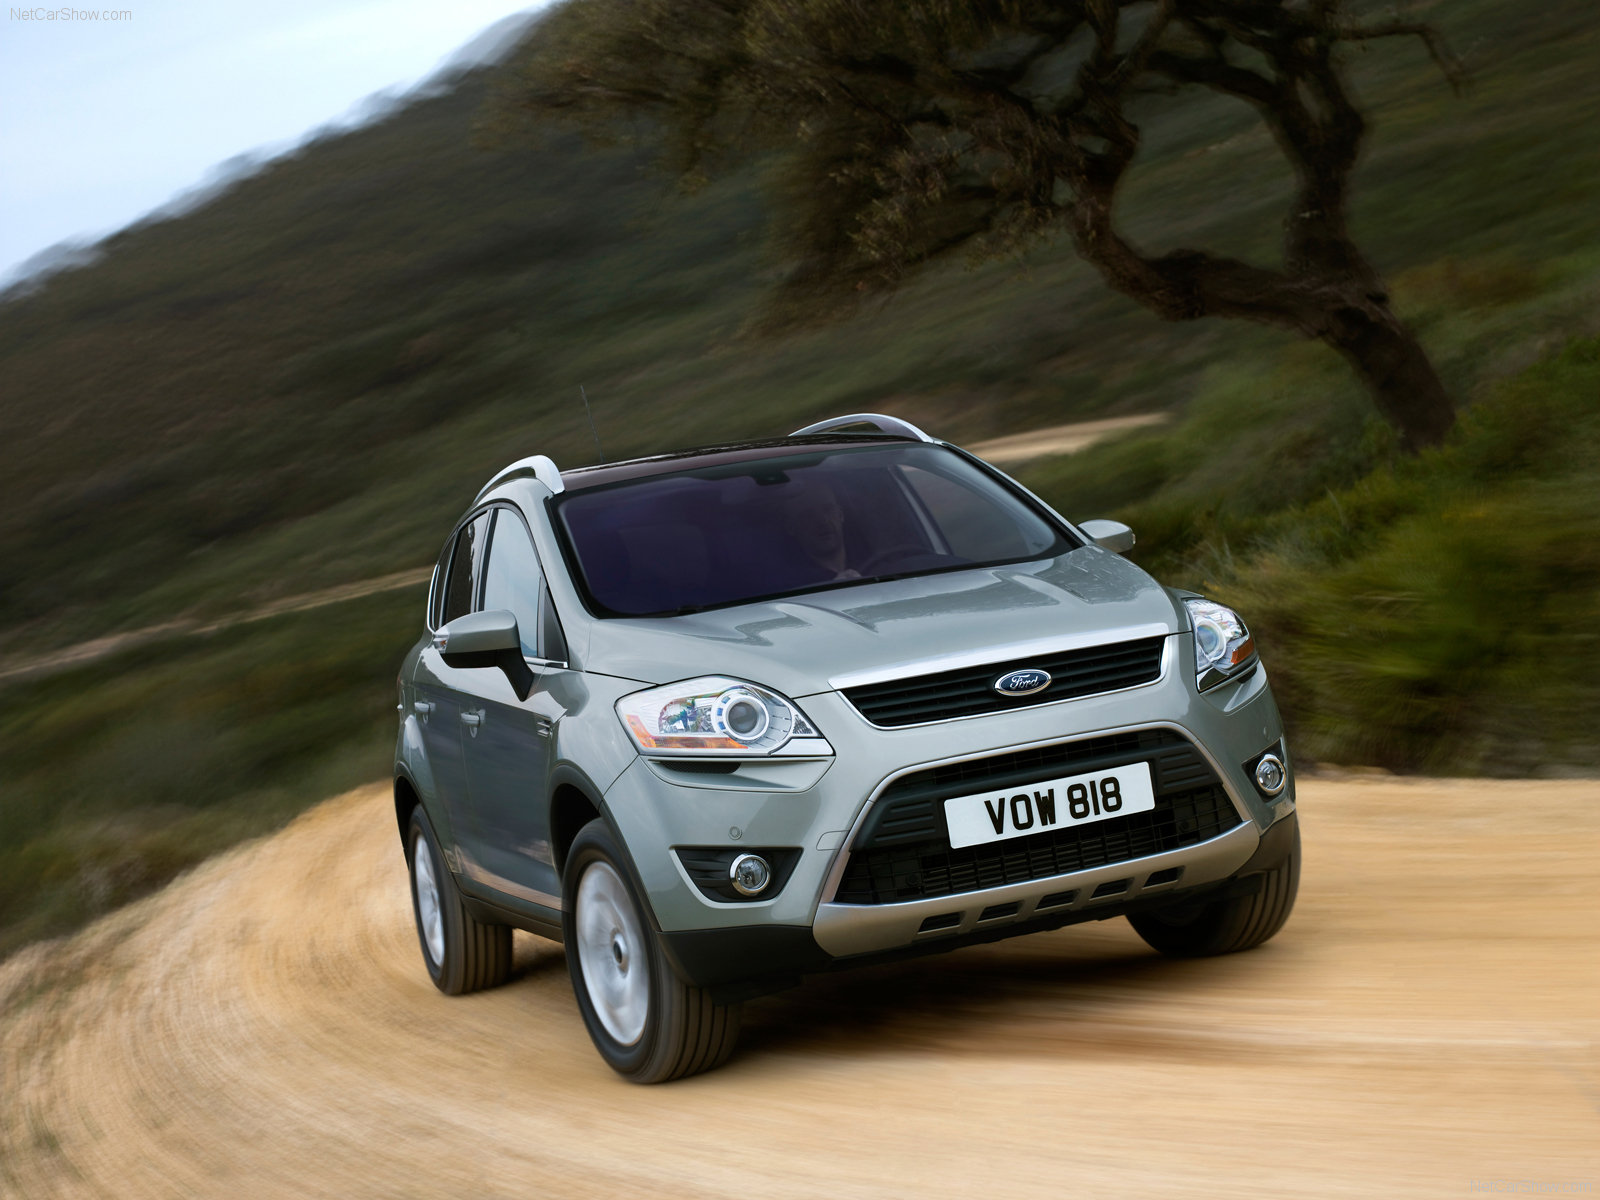 Ford Kuga picture # 52338 | Ford photo gallery | CarsBase.com